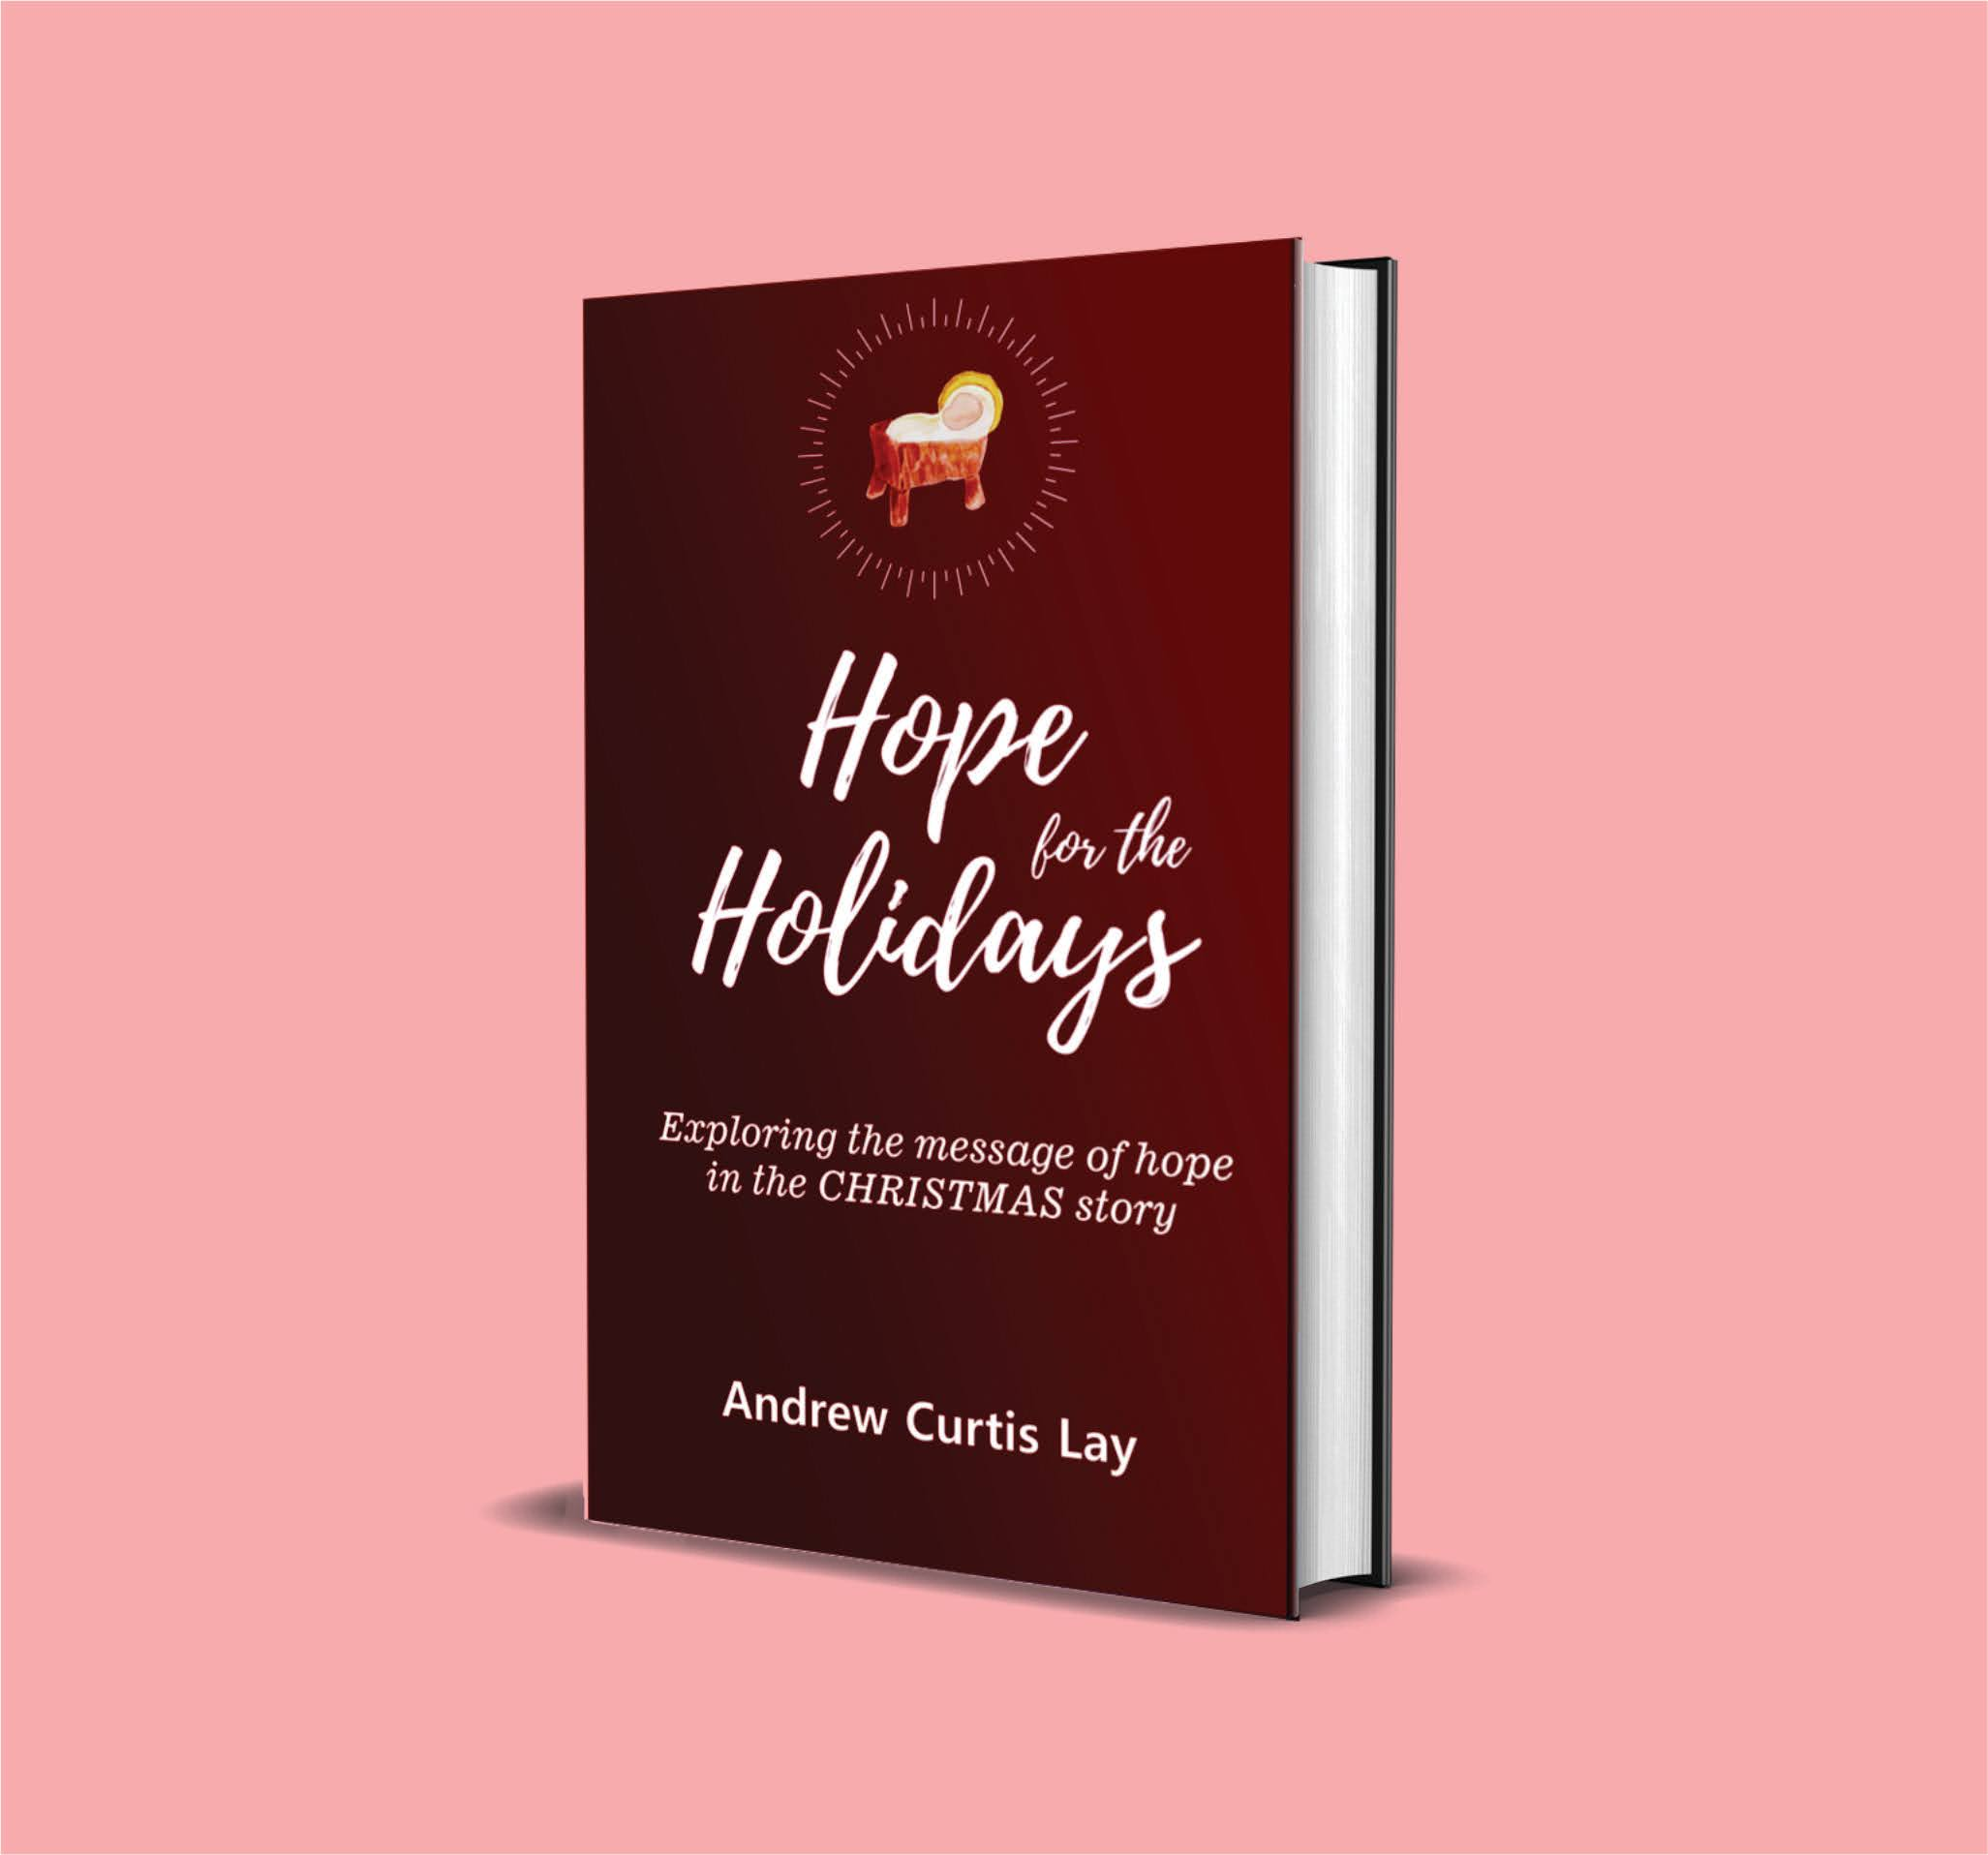 Hope for the Holidays: Exploring the Message of Hope in the Christmas Story - by Andrew Curtis Lay